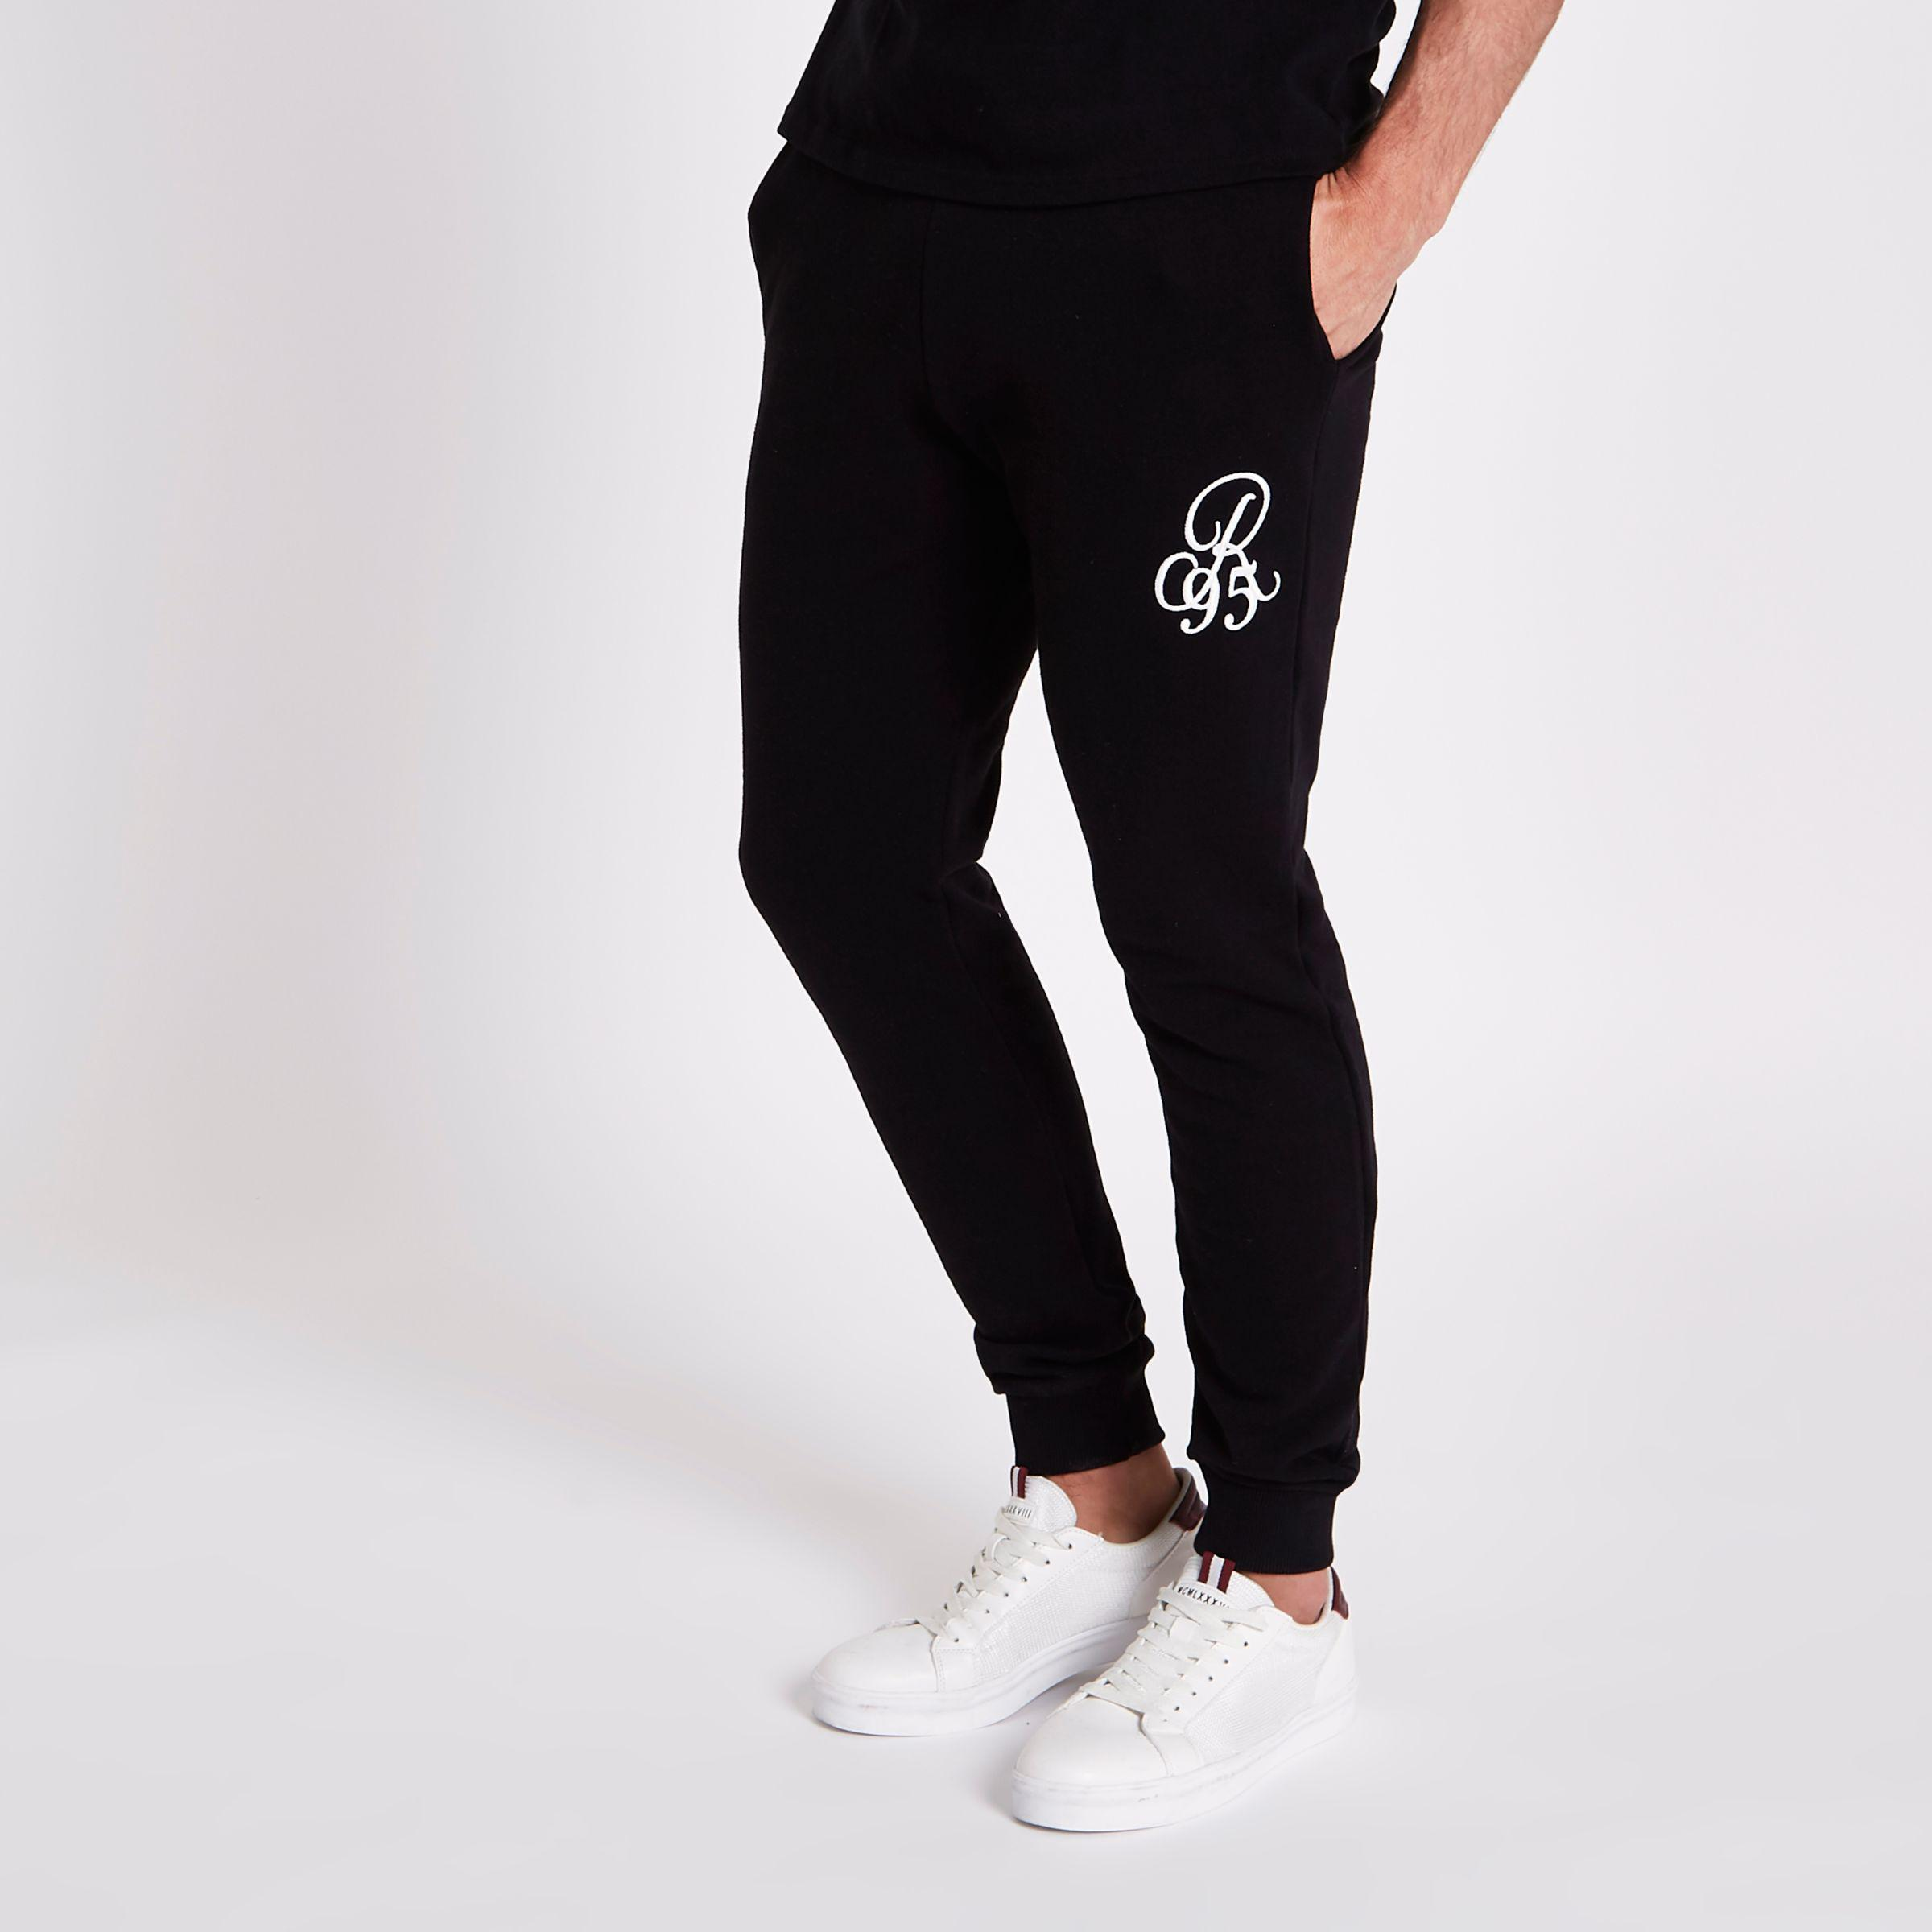 Clearance New Best Supplier Mens Black muscle fit R95 embroidered joggers River Island 100% Authentic Online Discount For Nice Footlocker Cheap Online KJMgiJE